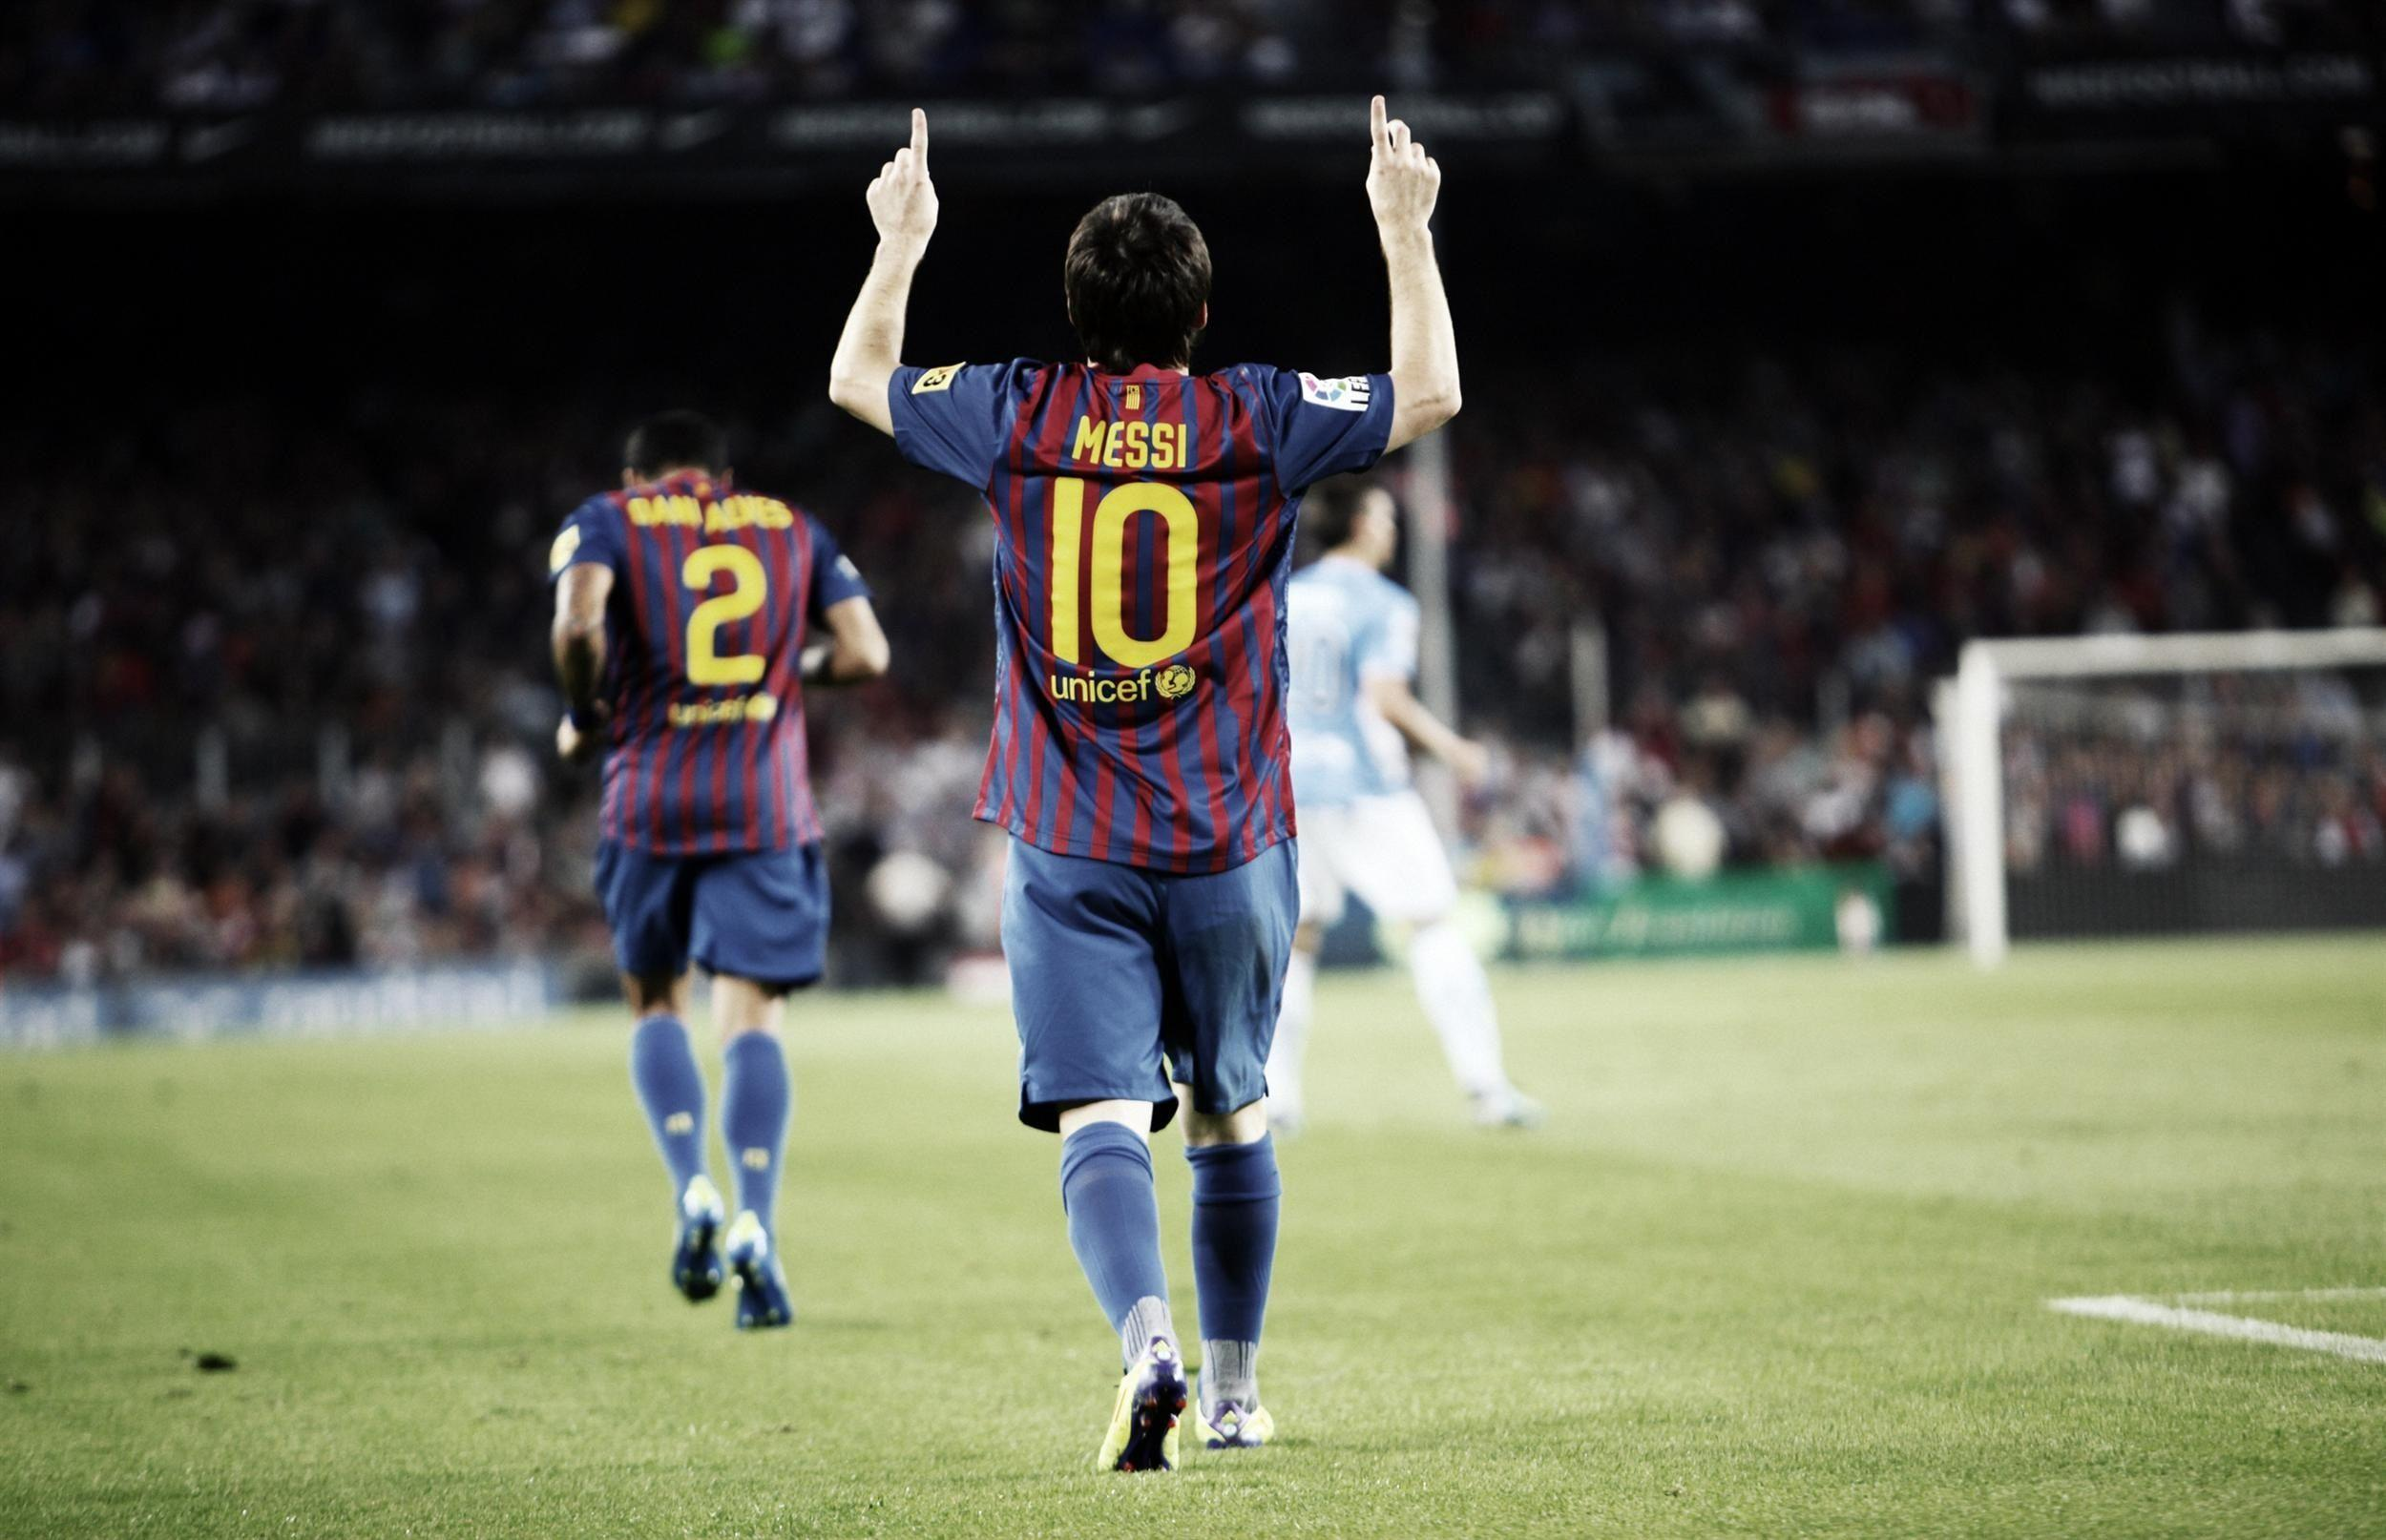 messi-hd-wallpaper-2012- football HD free wallpapers backgrounds ...